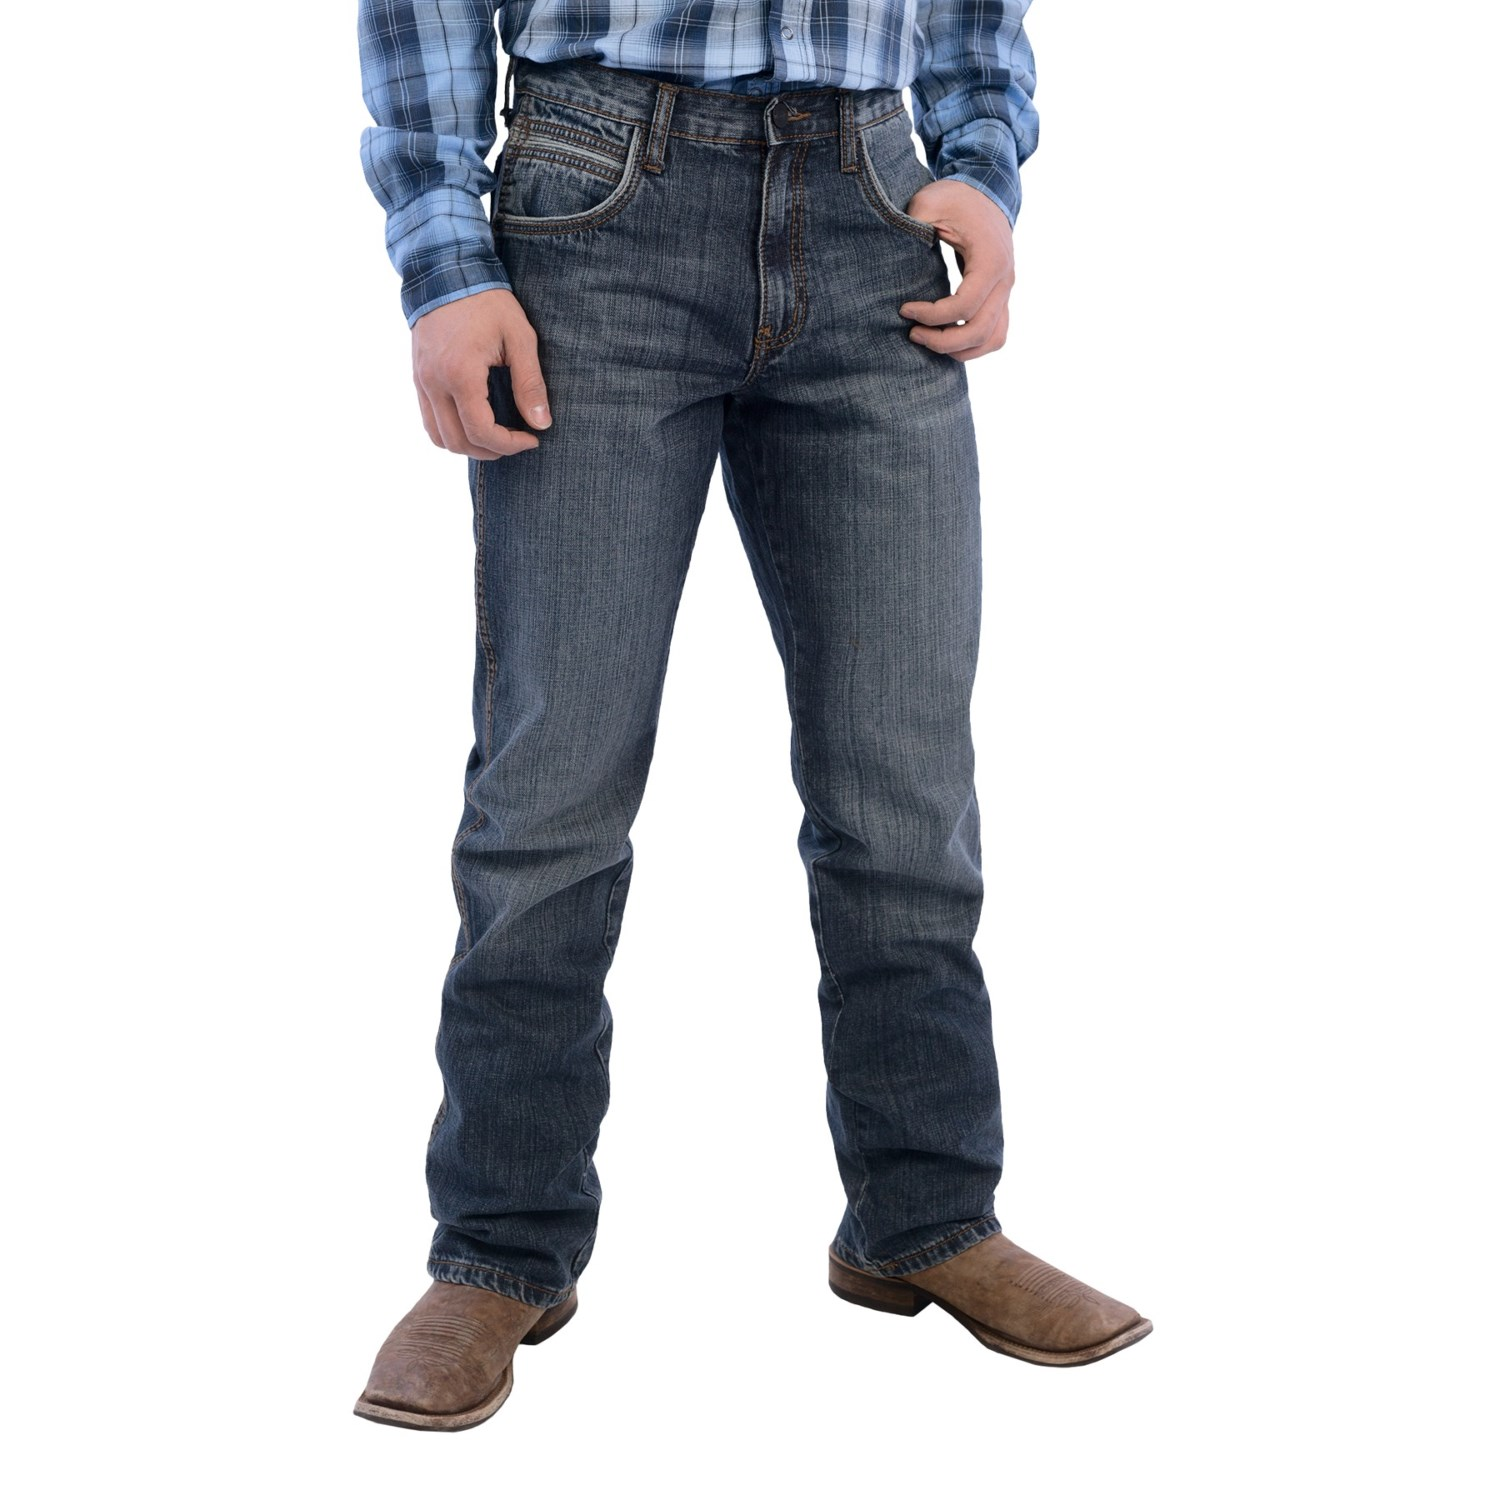 Wrangler Limited Edition Retro Jeans (For Men) 9086P - Save 56%